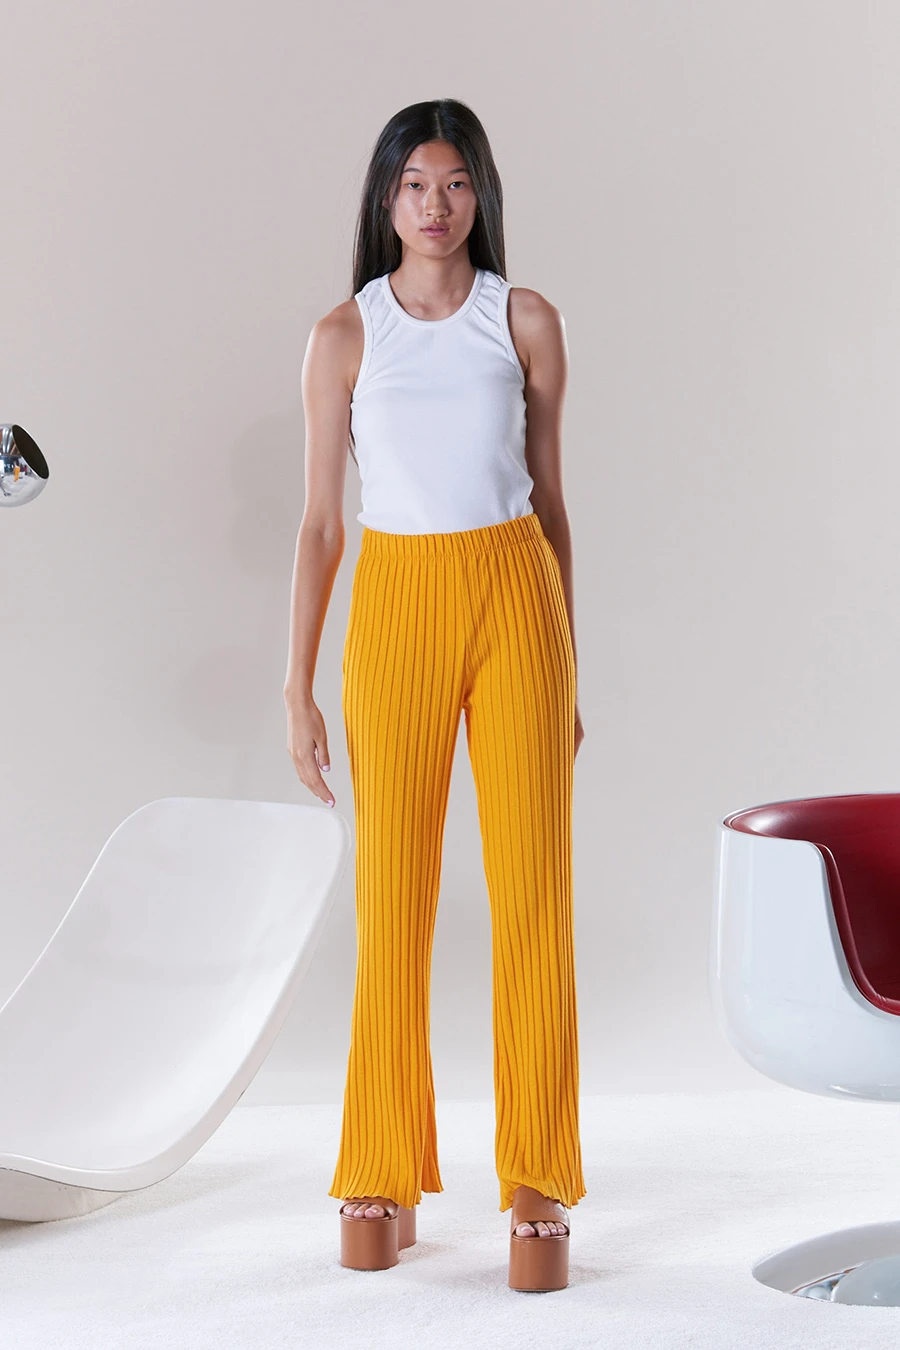 """<br><br><strong>Simon Miller</strong> Rib Cyrene Pant, $, available at <a href=""""https://go.skimresources.com/?id=30283X879131&url=https%3A%2F%2Fwww.simonmillerusa.com%2Fcollections%2Frib-bottoms%2Fproducts%2Frib-cyrene-pant-in-sunset-orange"""" rel=""""nofollow noopener"""" target=""""_blank"""" data-ylk=""""slk:Simon Miller"""" class=""""link rapid-noclick-resp"""">Simon Miller</a>"""